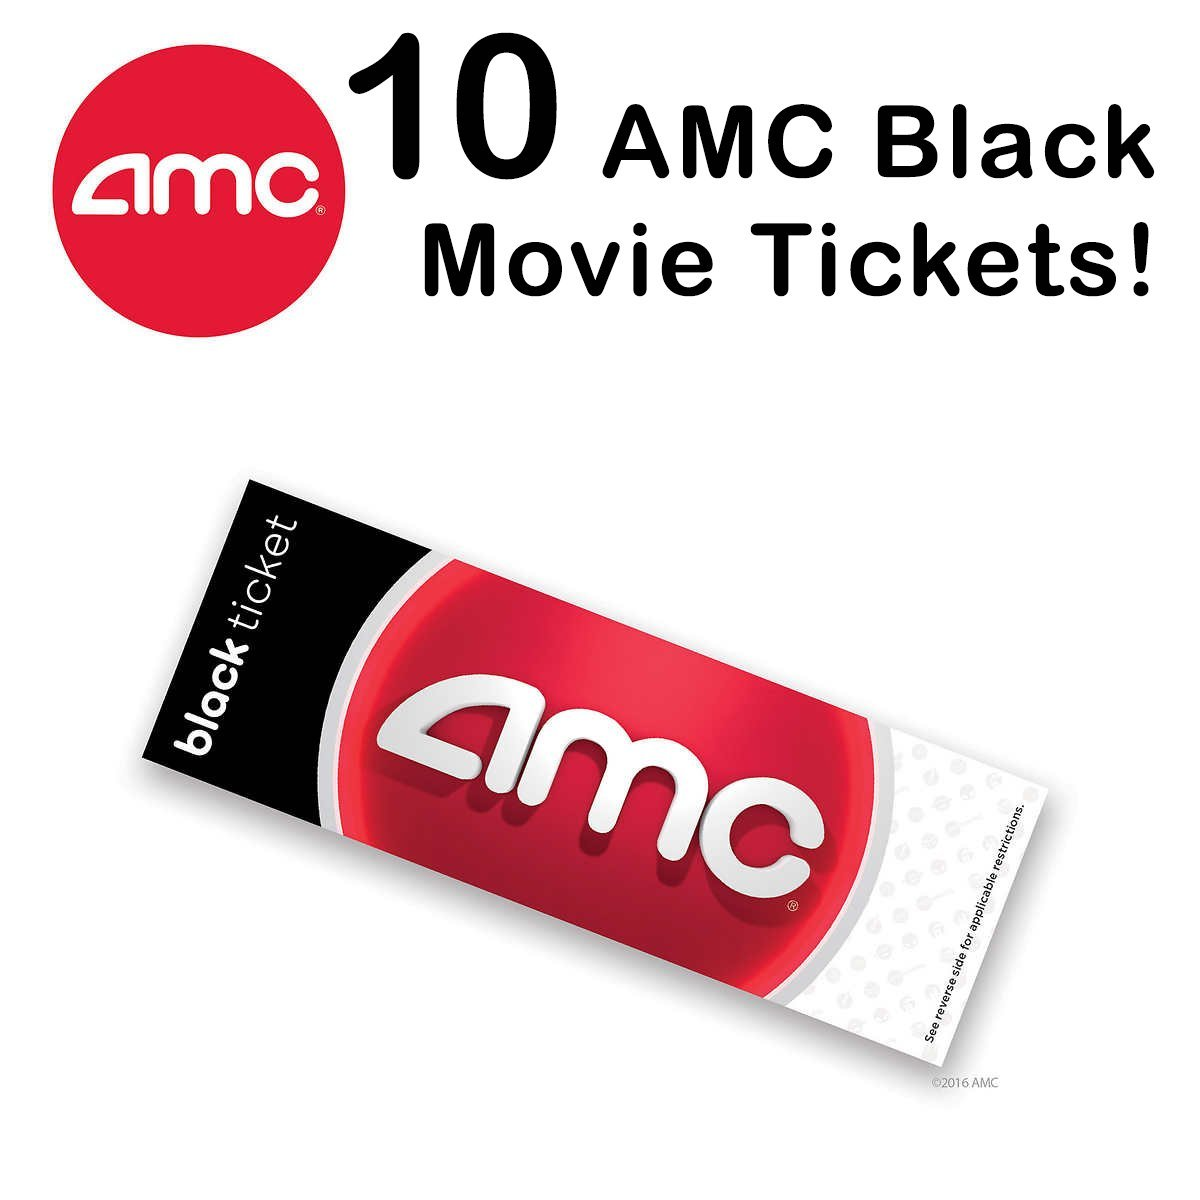 picture about Amc Printable Tickets called : 10 AMC Theatre Black Video Tickets (Help save $15+):